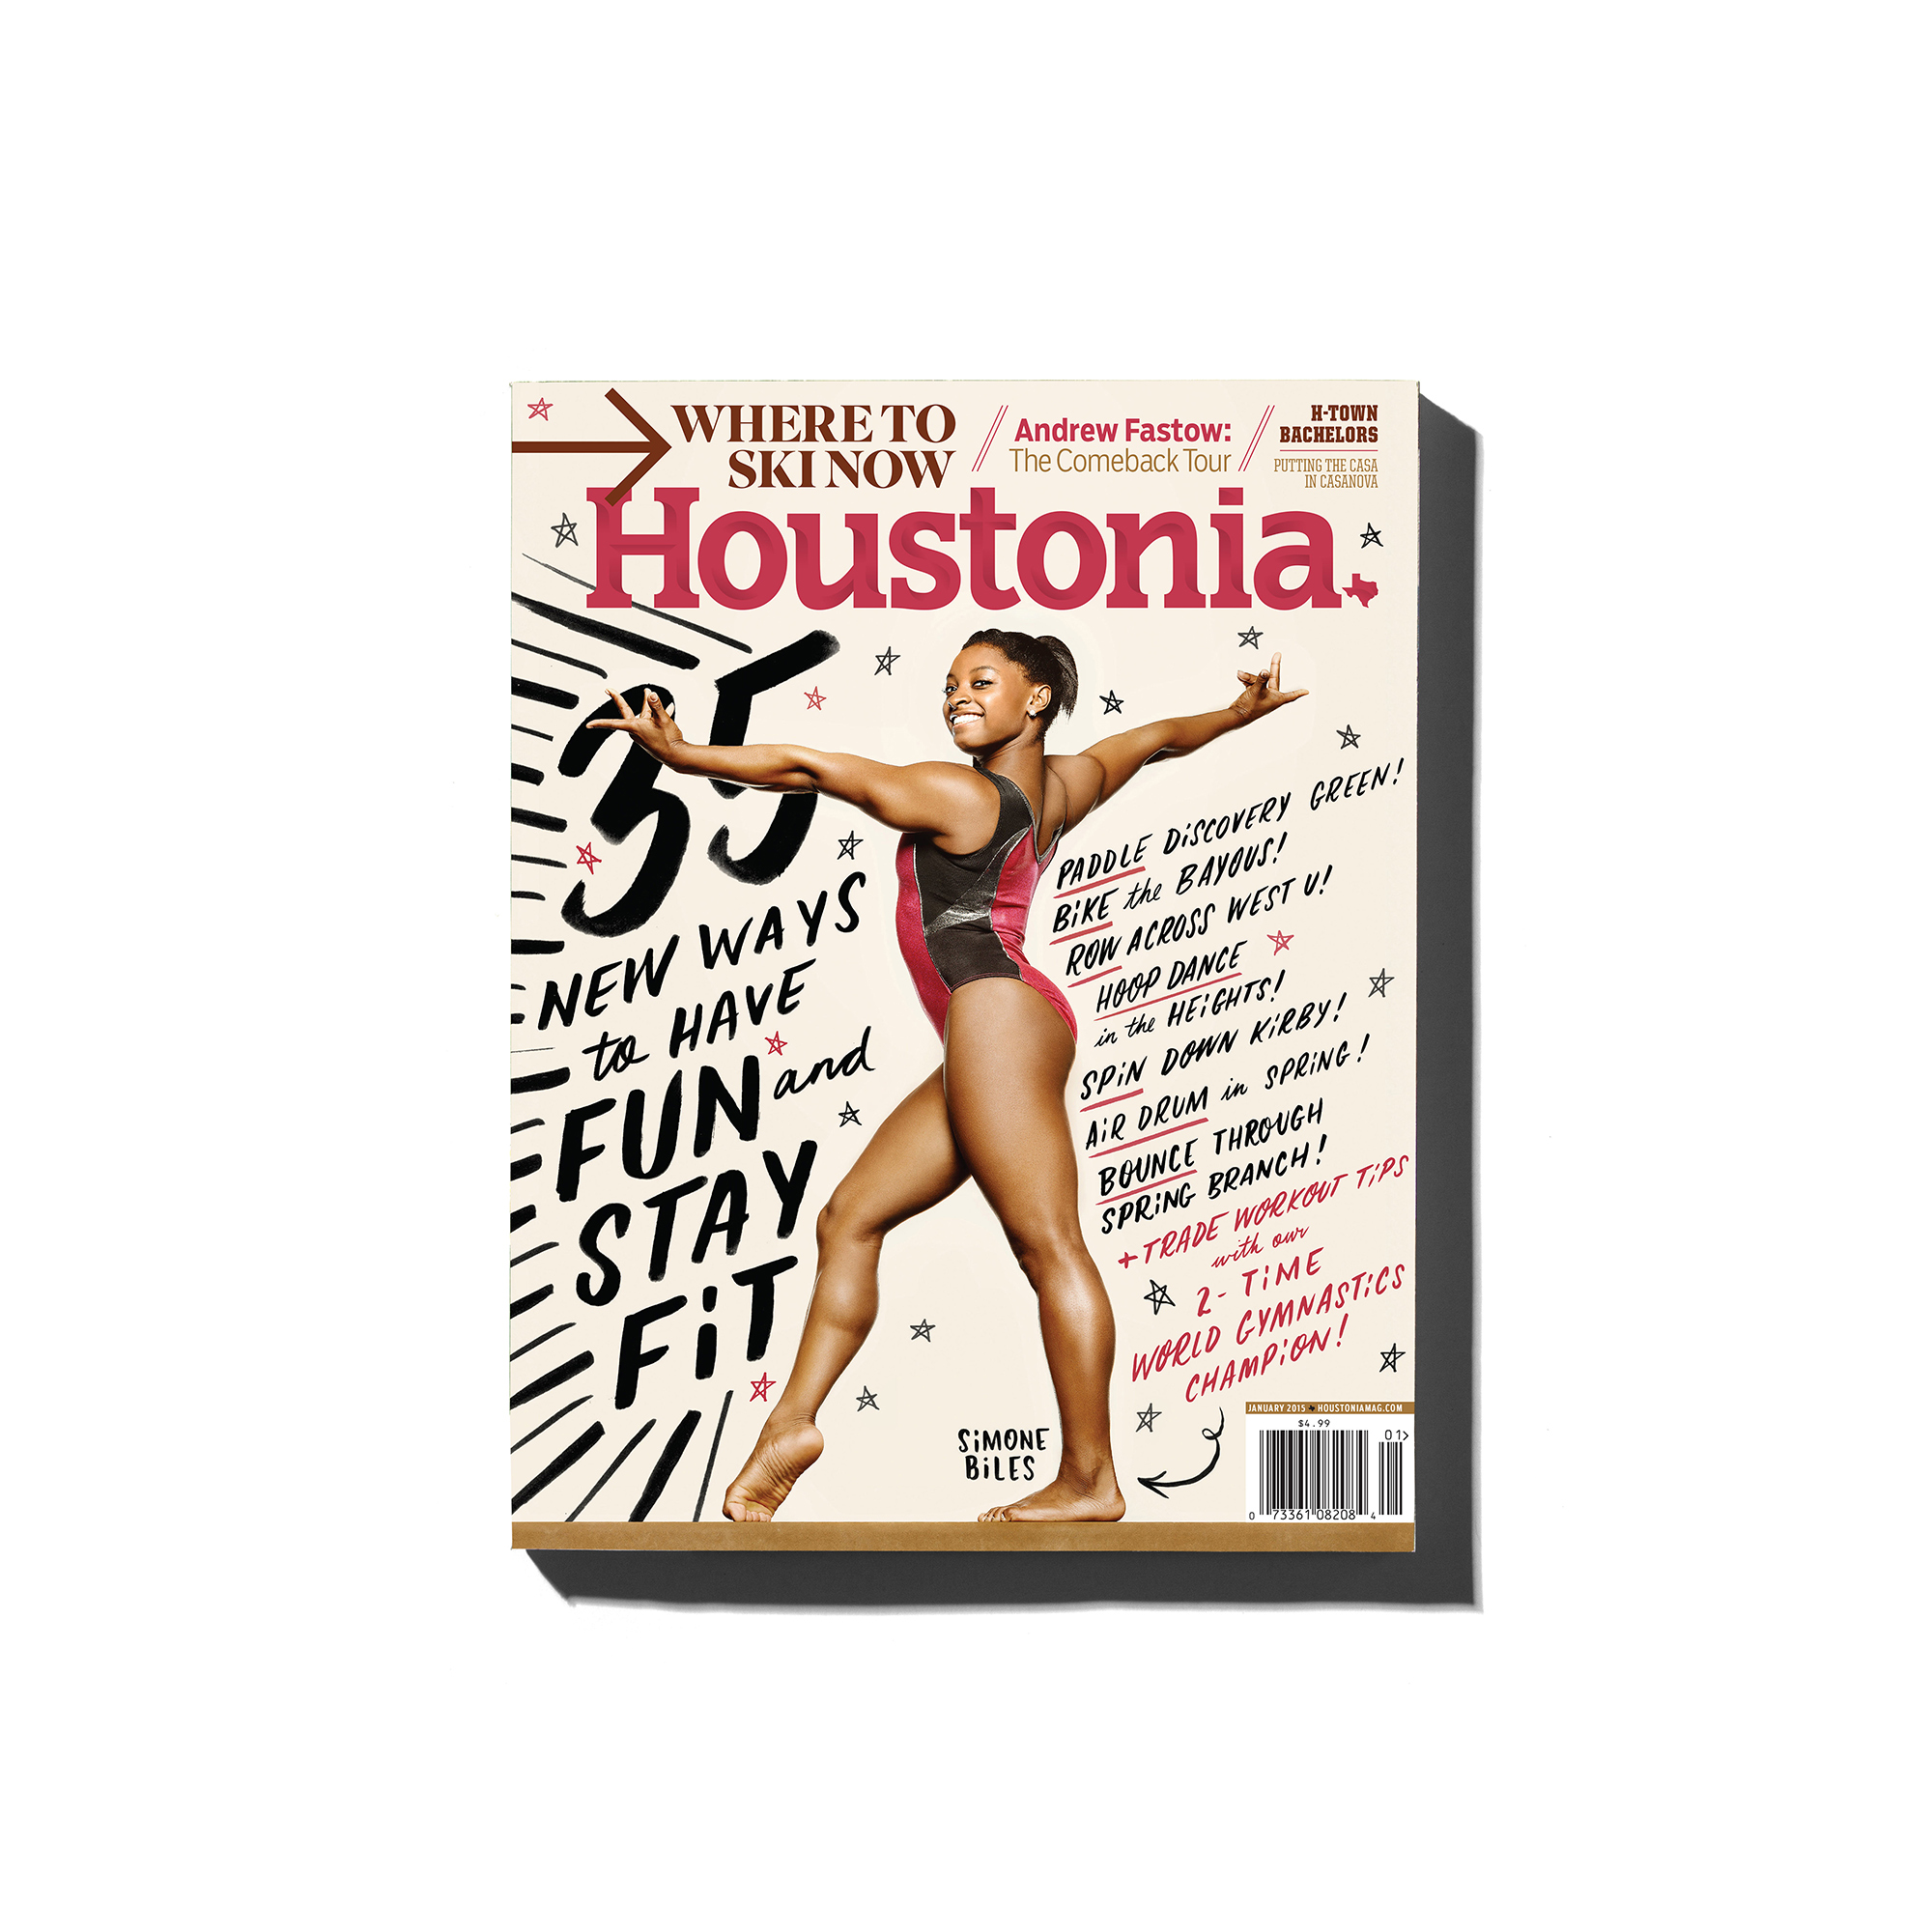 US gold-medal winning olympic gymnast, Simone Biles, photographed by editorial and commercial photographer, Todd Spoth, for the cover of Houstonia Magazine.